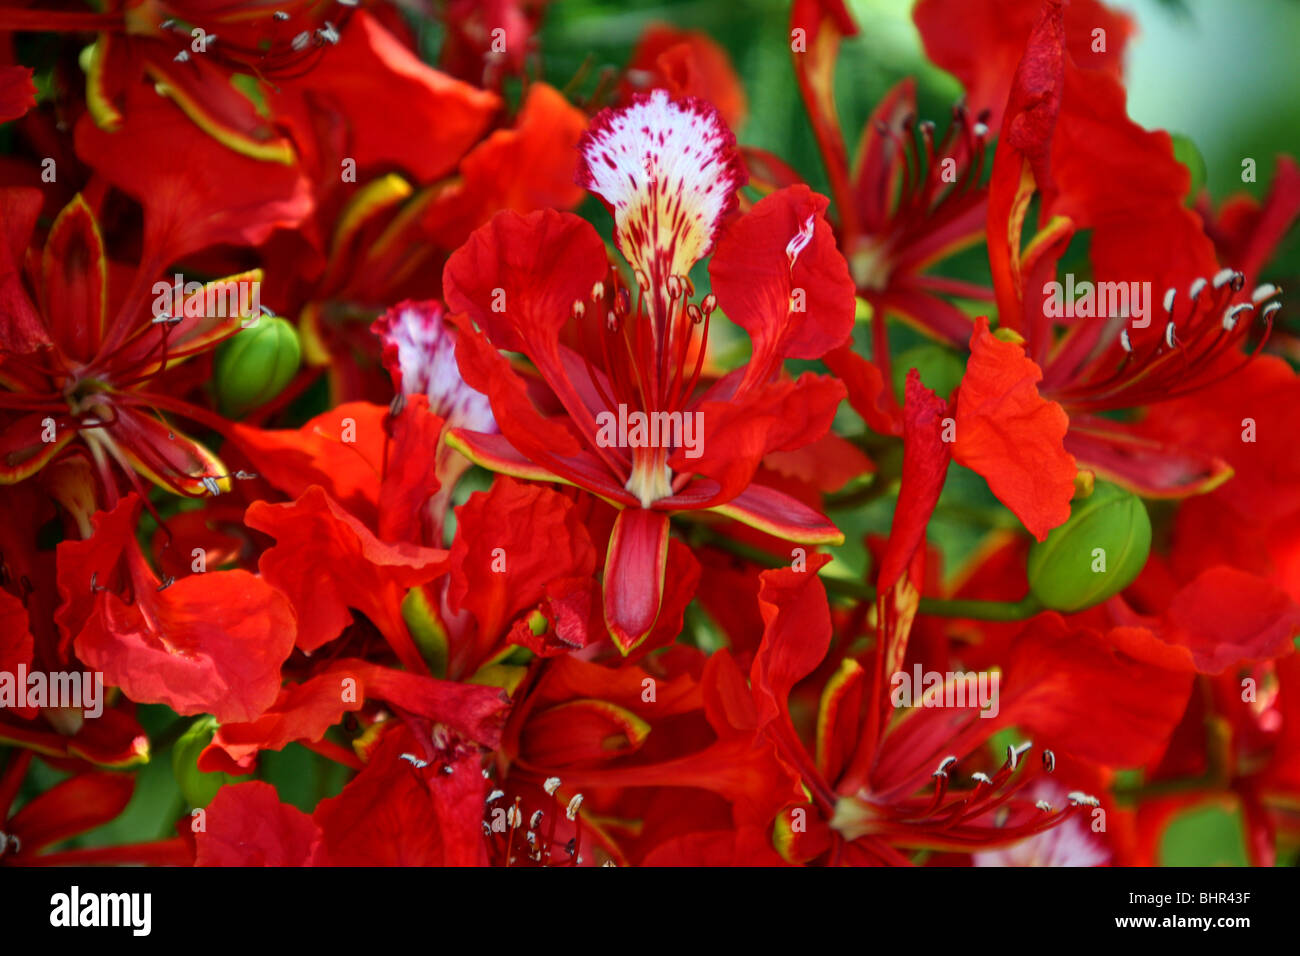 A poinciana in flower - Stock Image